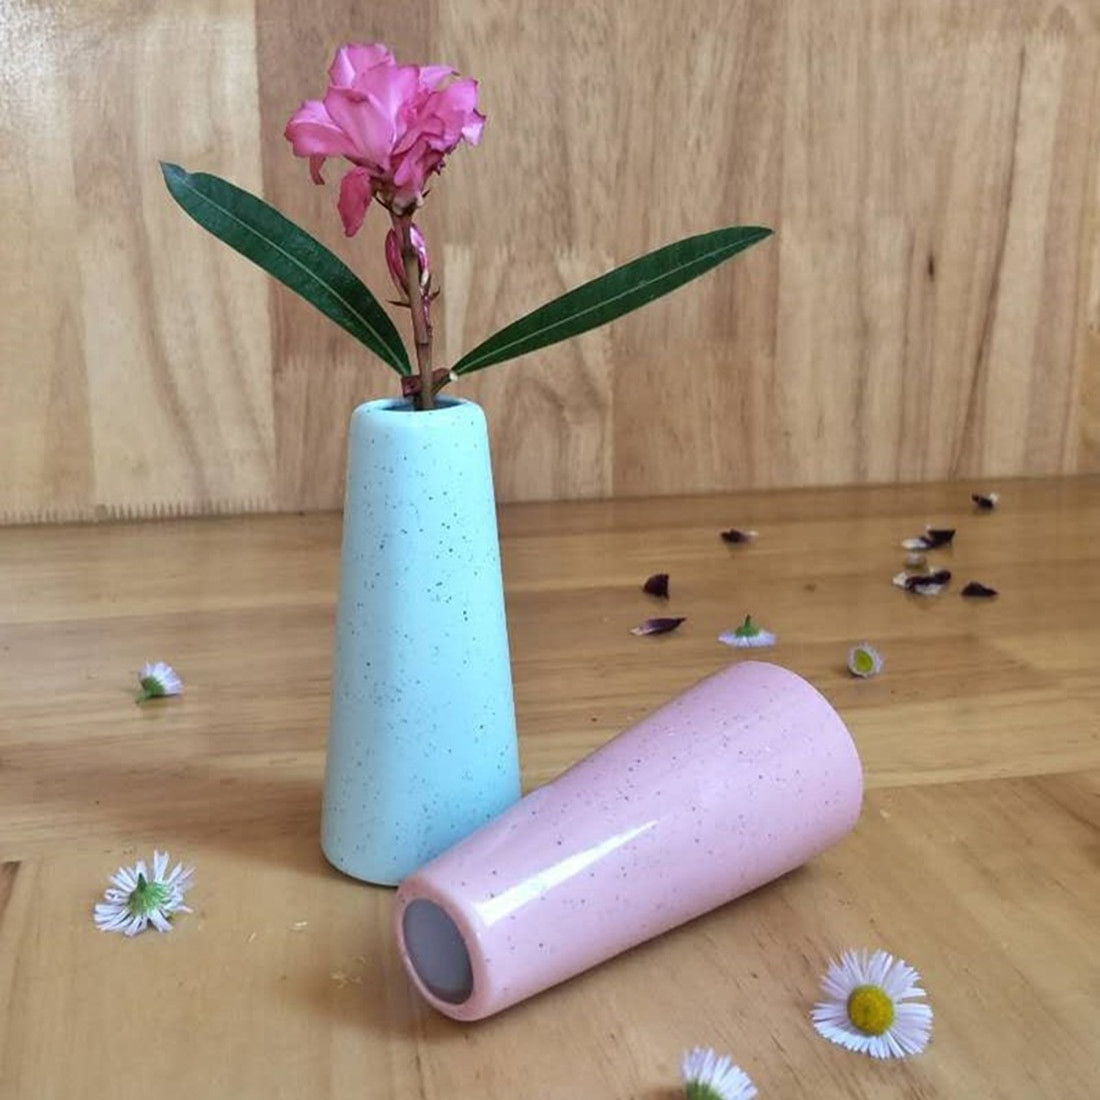 mini vases bulk of flower vases for homes mini ceramic tabletop vase for flowers home for flower vases for homes mini ceramic tabletop vase for flowers home room study hallway office wedding decor pink skyblue white in vases from home garden on